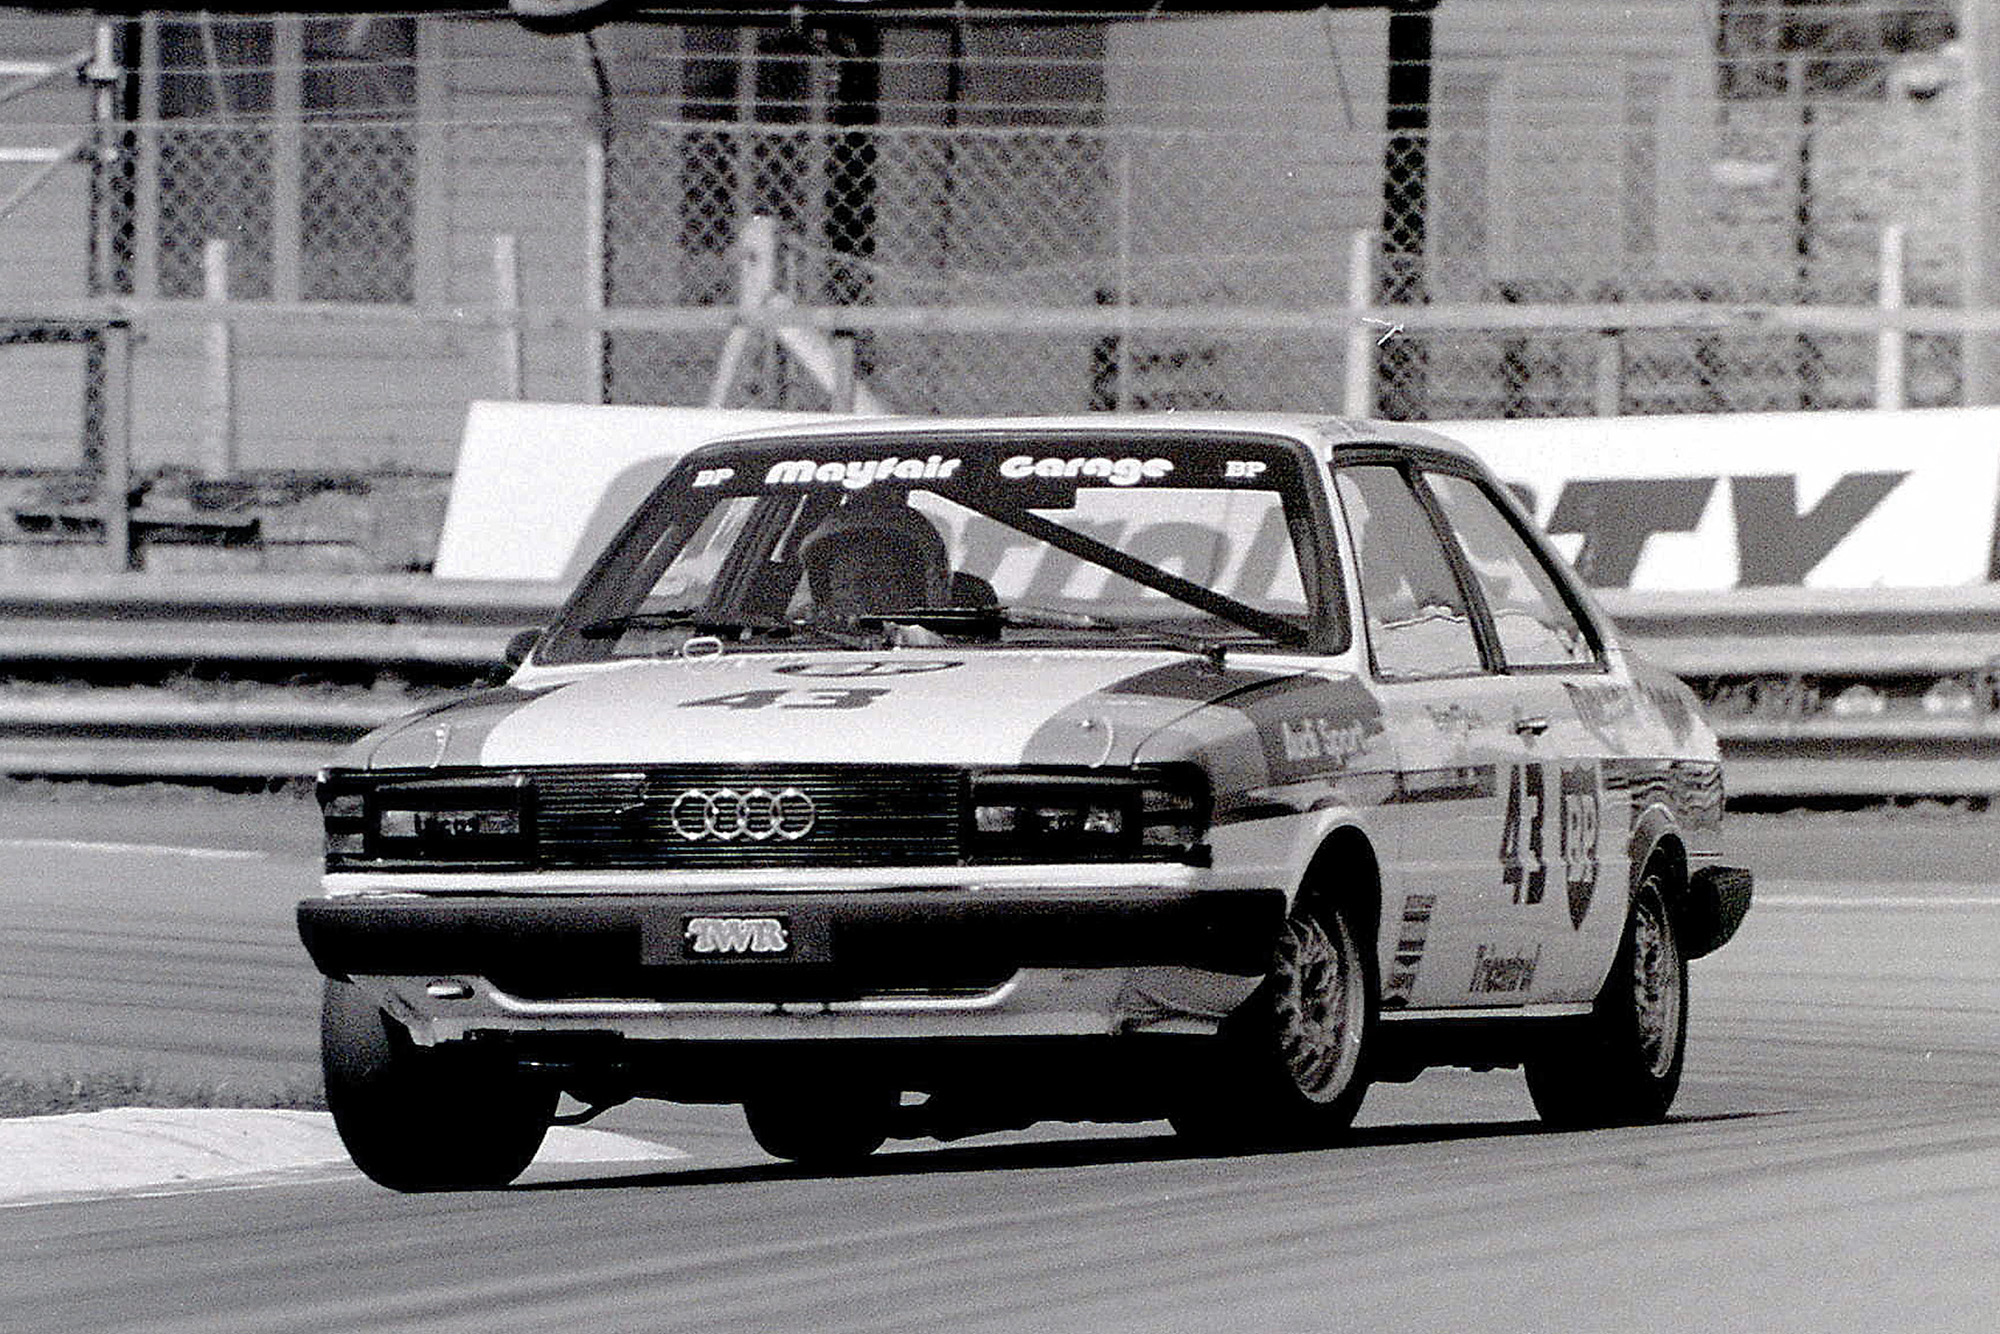 Stirling Moss in an Audi 80 at Oulton Park racing in the 1981 British Saloon Car Championship